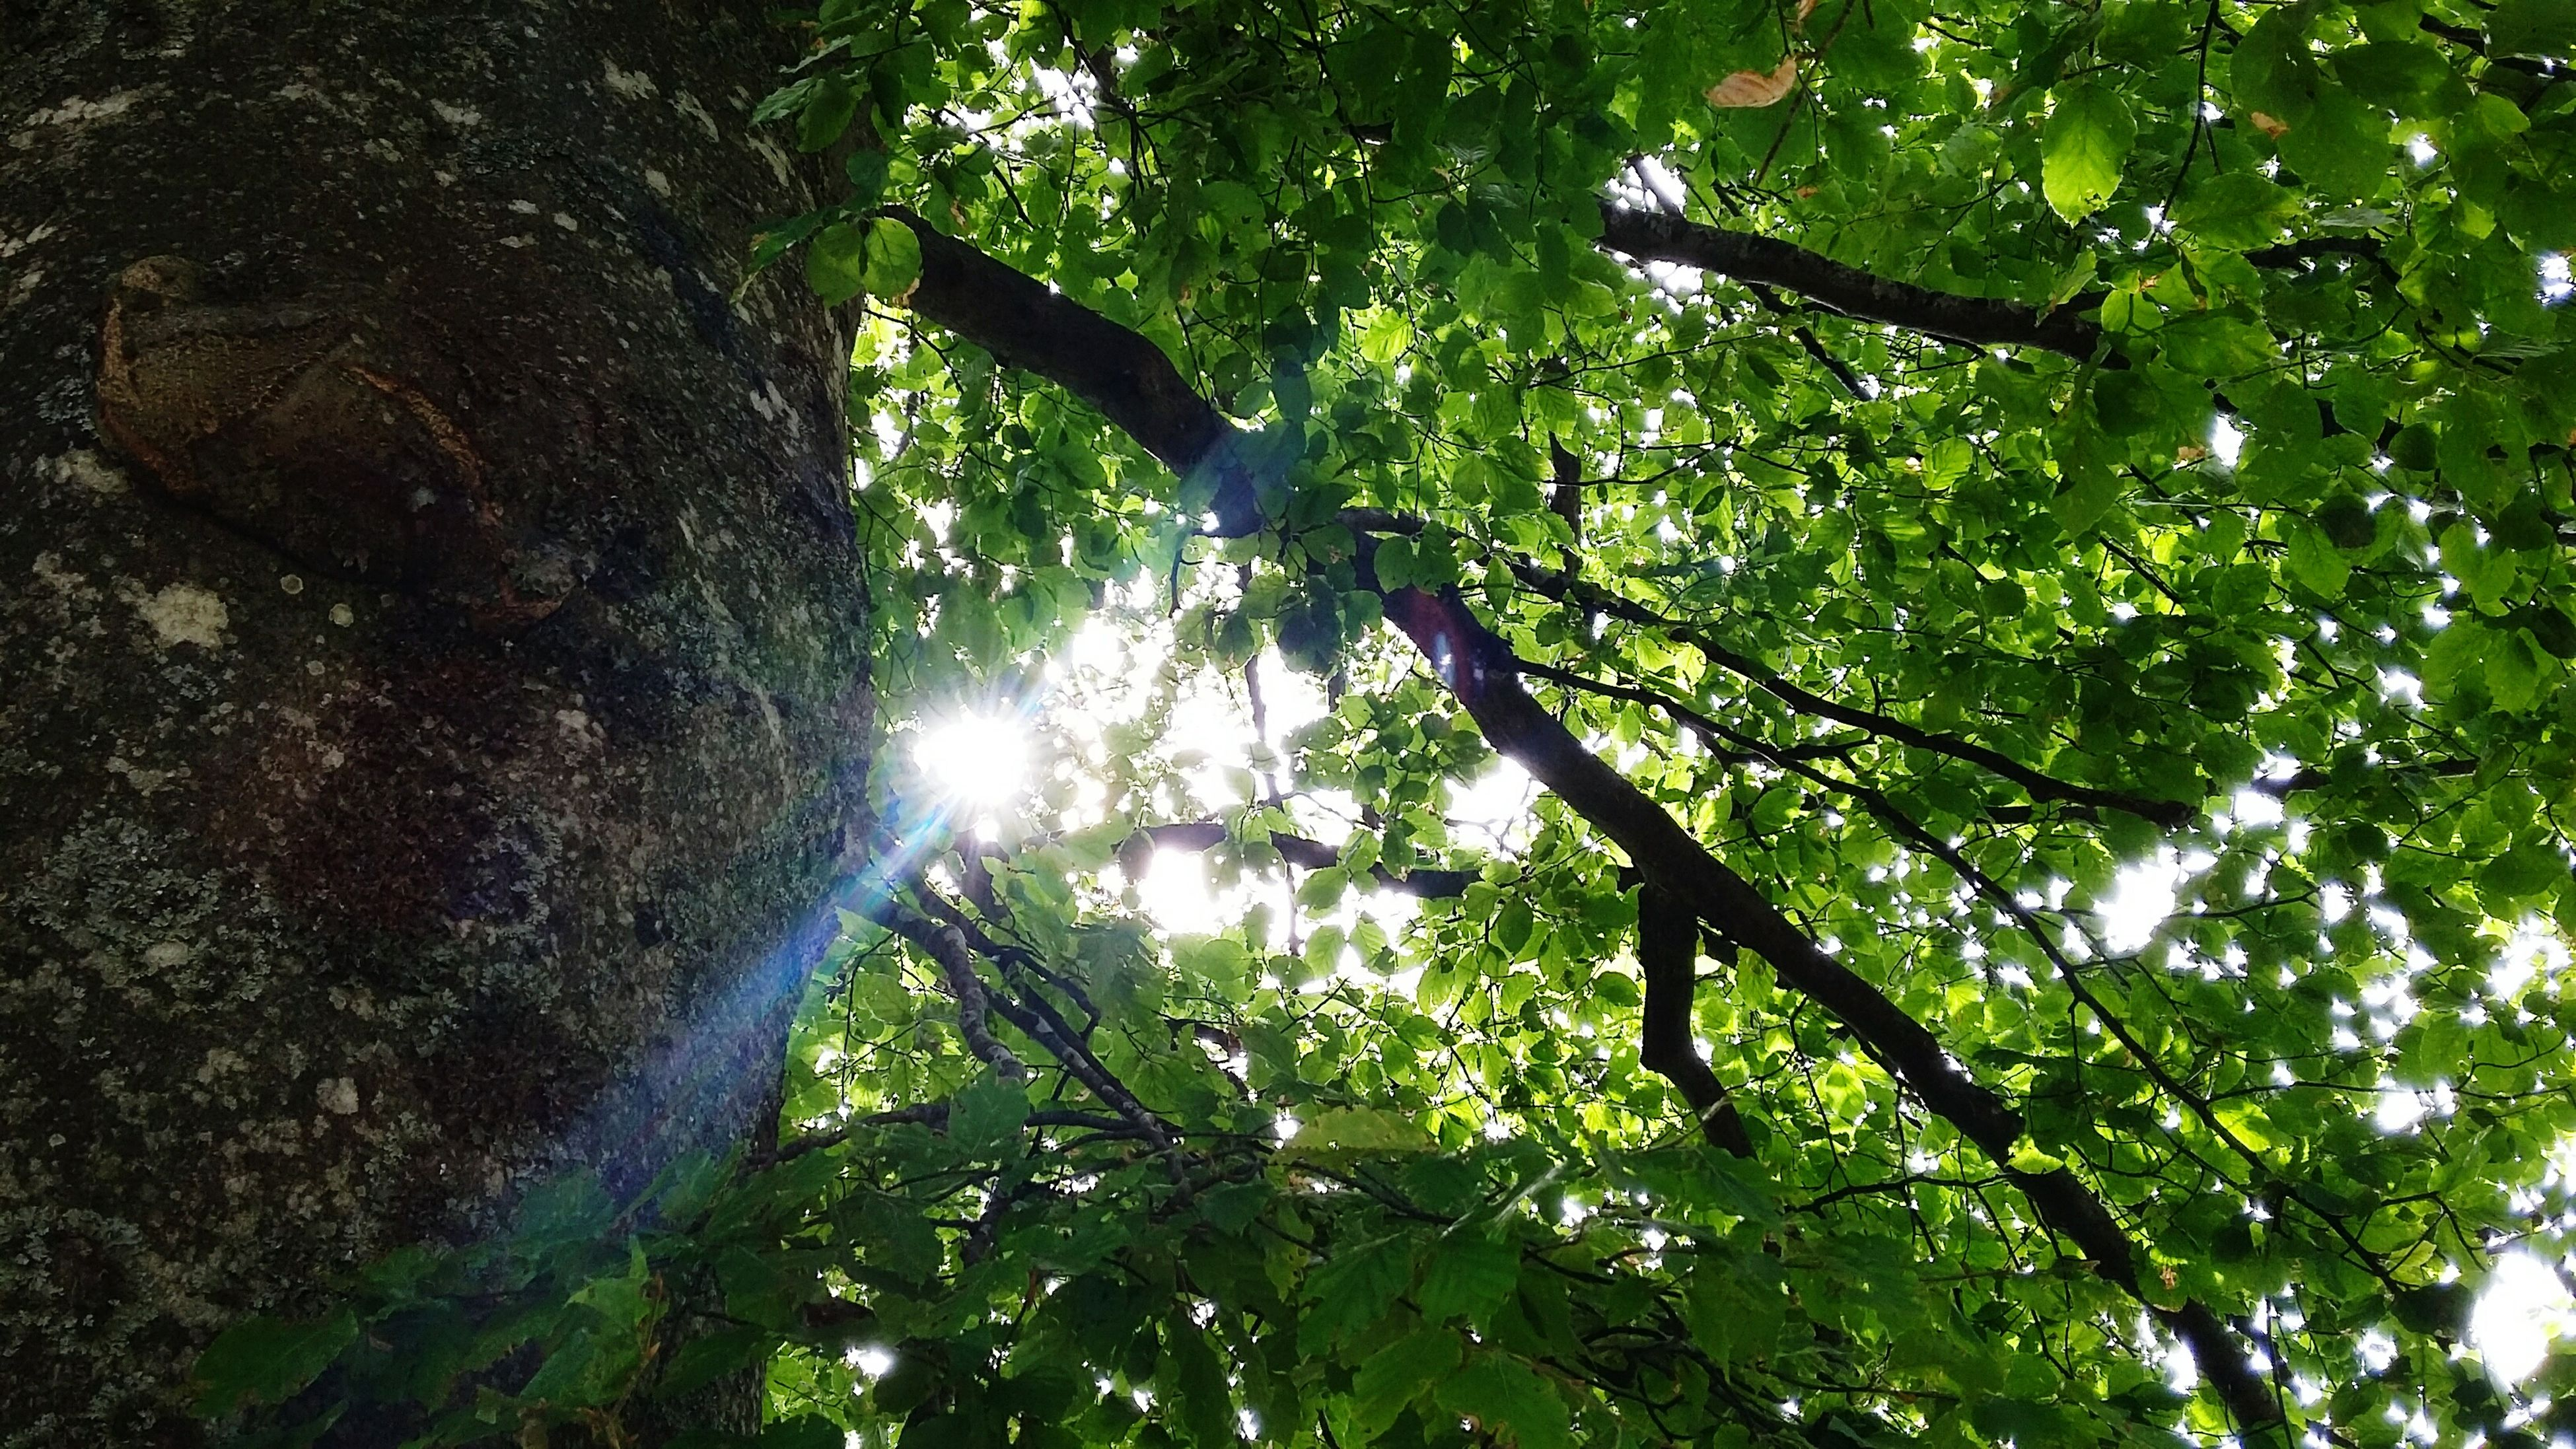 tree, growth, tranquility, low angle view, nature, branch, forest, tree trunk, green color, sunlight, beauty in nature, sun, tranquil scene, sunbeam, scenics, lens flare, woodland, day, outdoors, sky